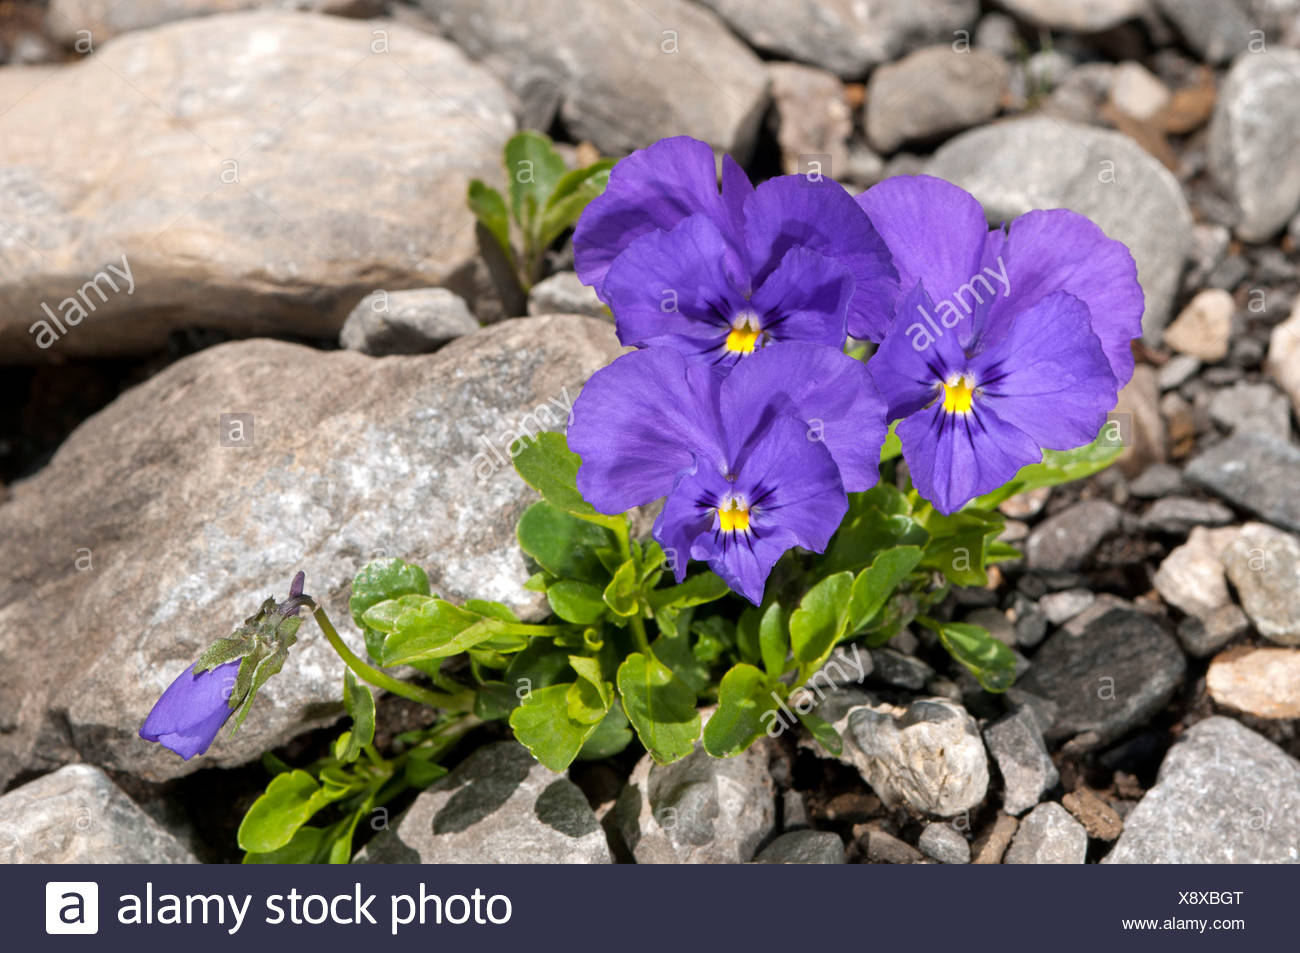 Mont-Cenis violets or pansies (Viola cenisia), Sanetschpass, Switzerland - Stock Image